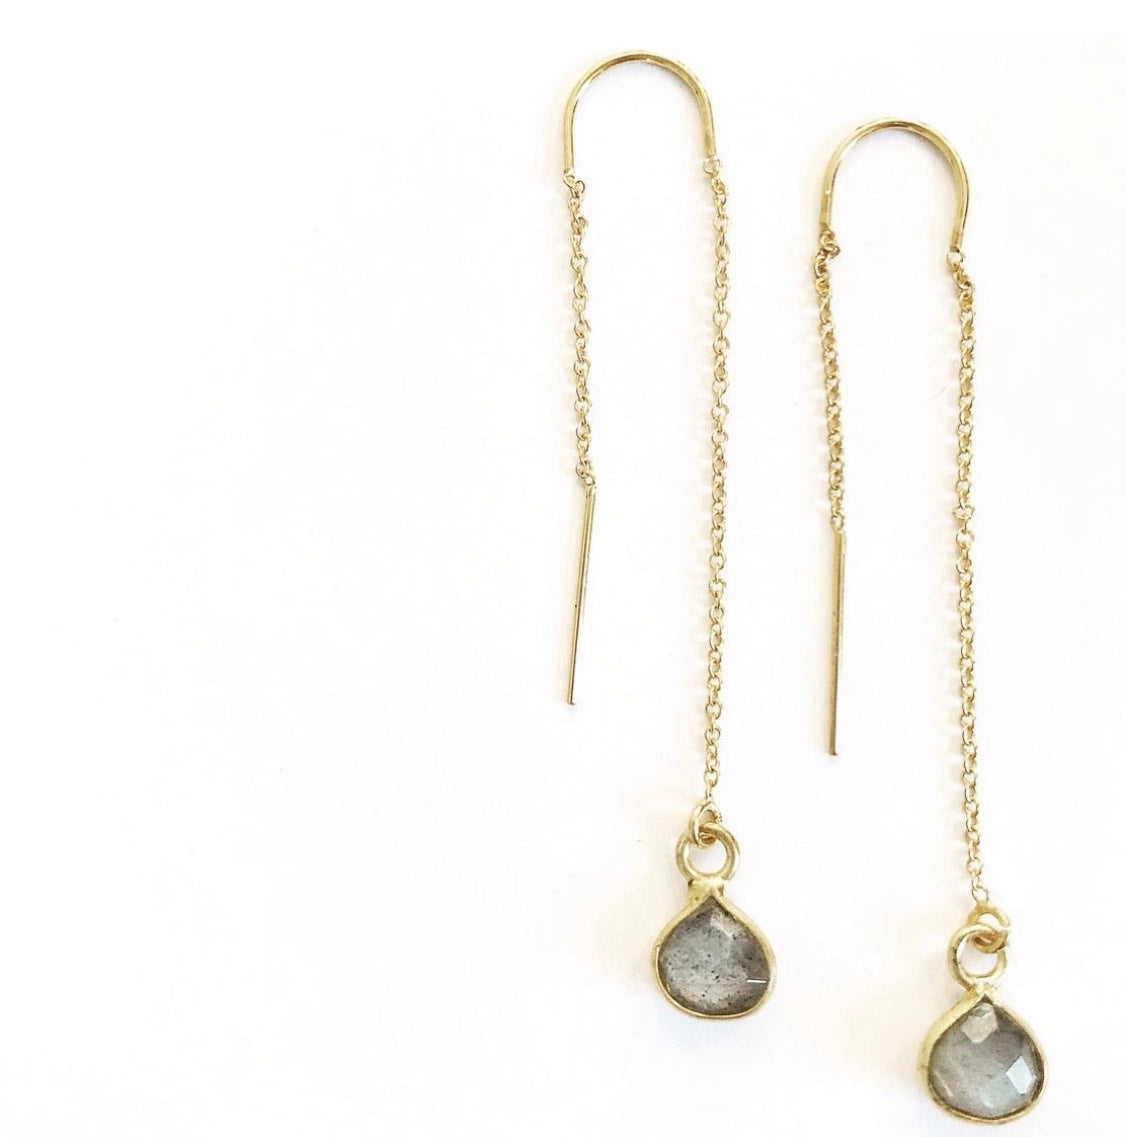 Dy4: Tiny Labradorite Teardrop Earrings